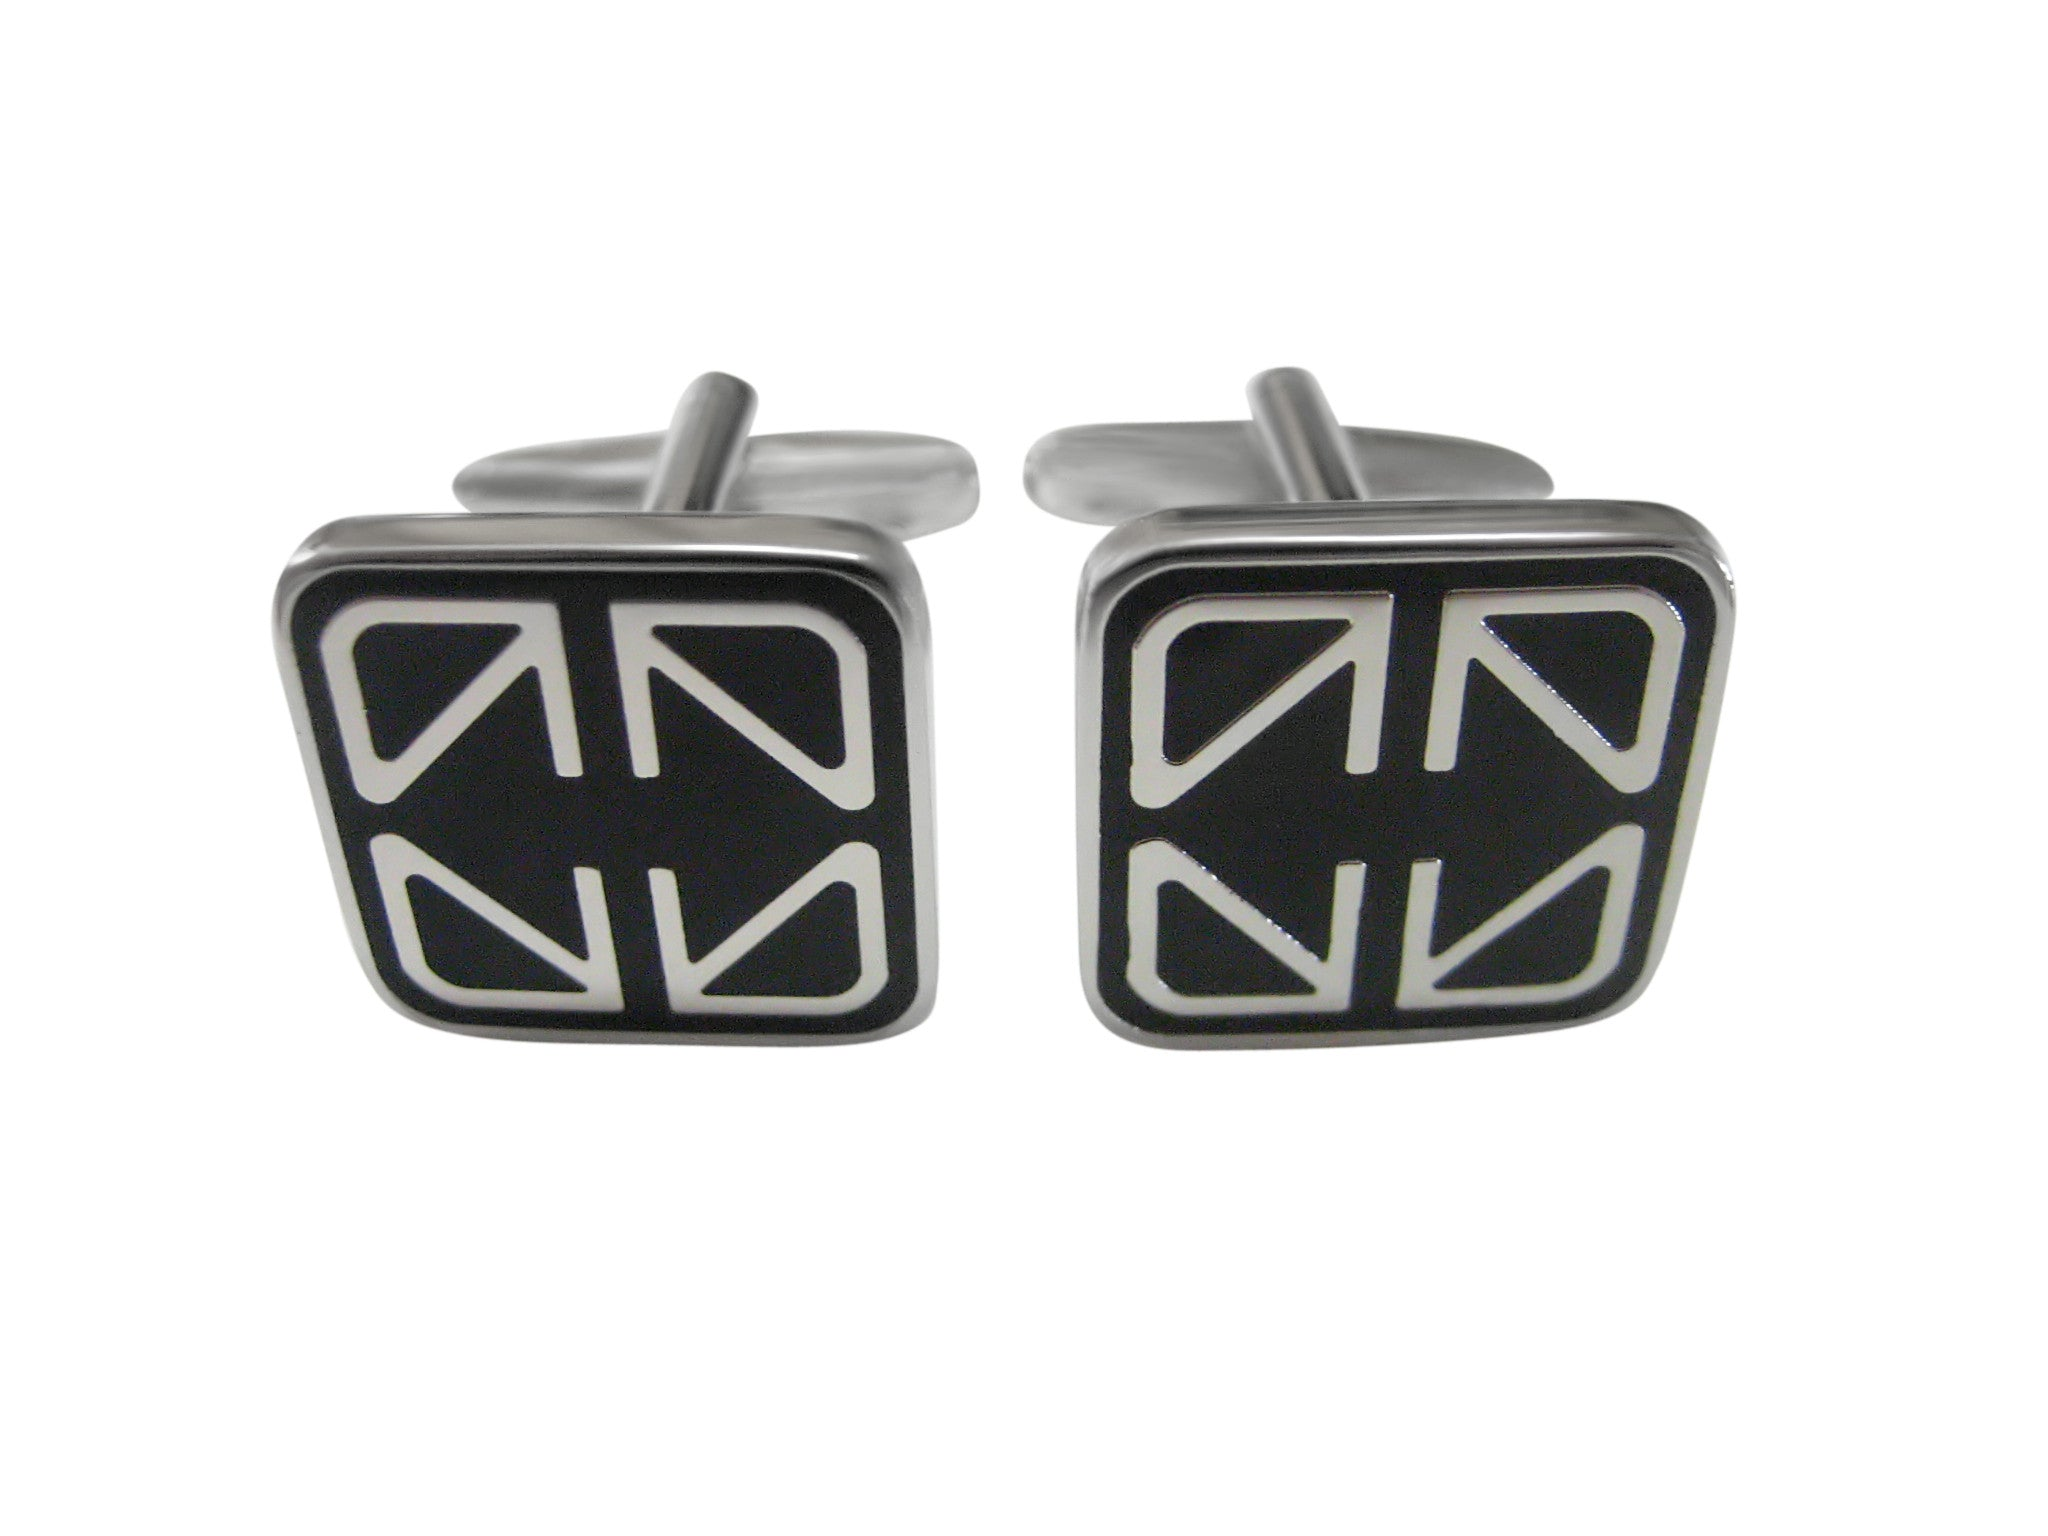 Rounded Square Black Line Cufflinks